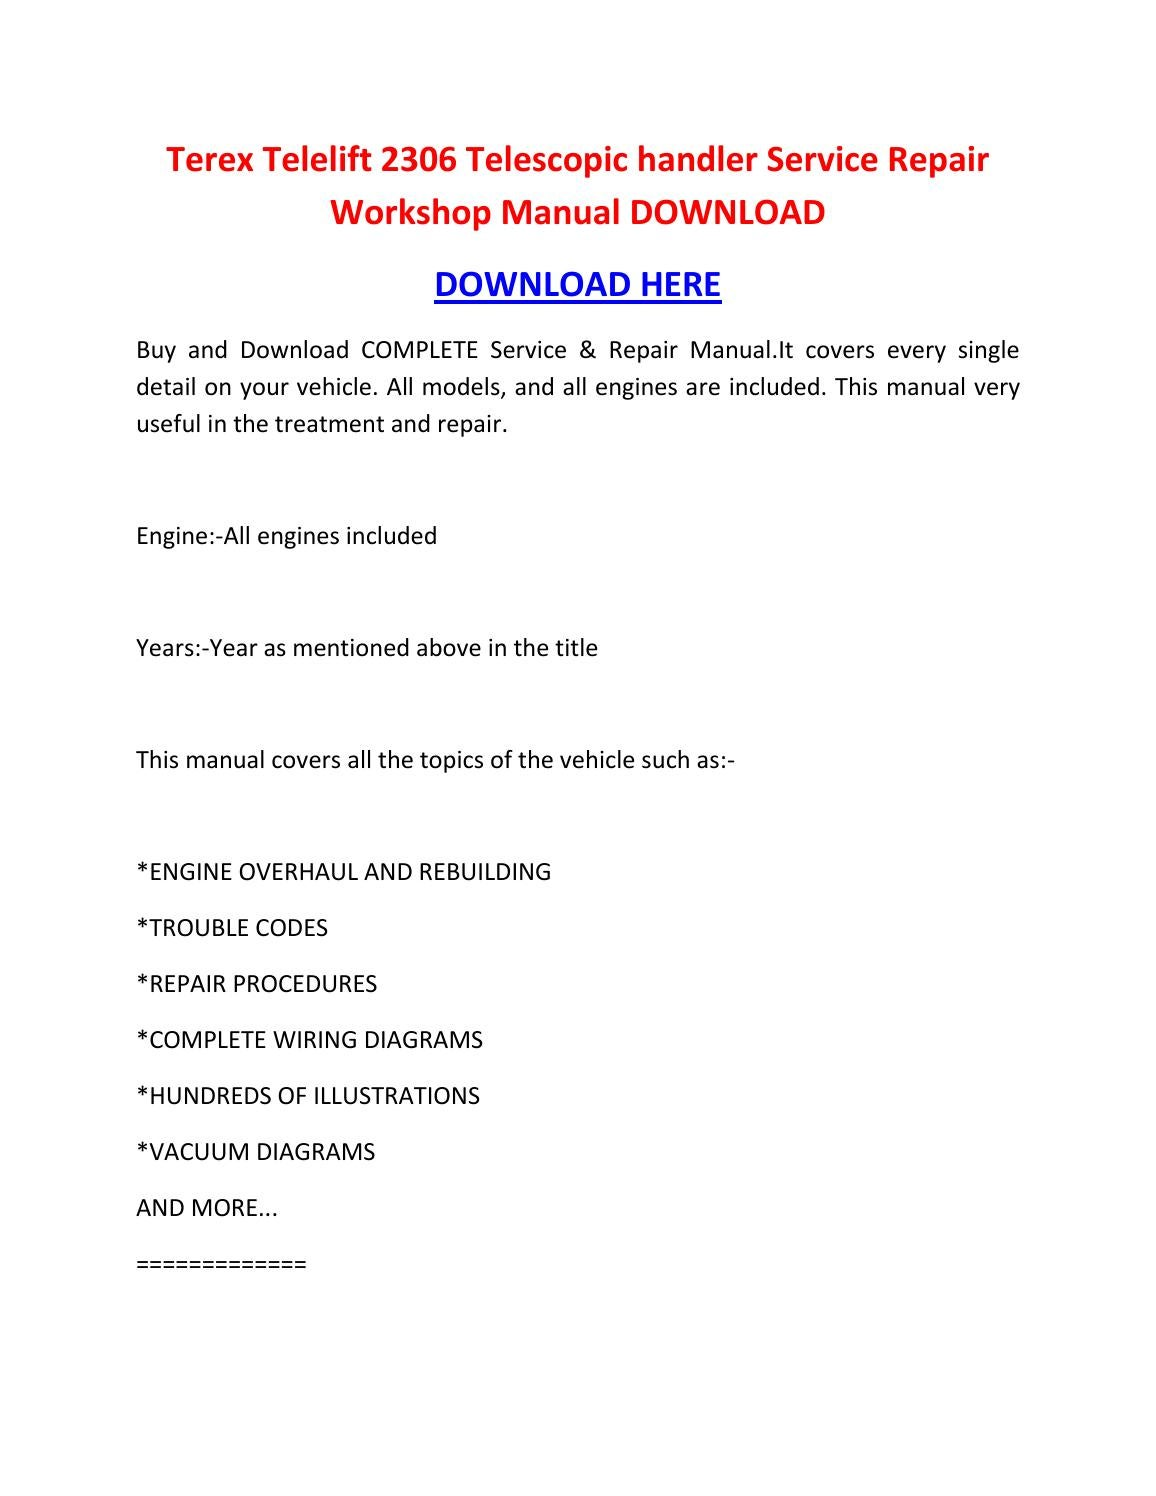 hight resolution of terex telelift 2306 telescopic handler service repair workshop manual download by sheffieldbronsonipqgz issuu